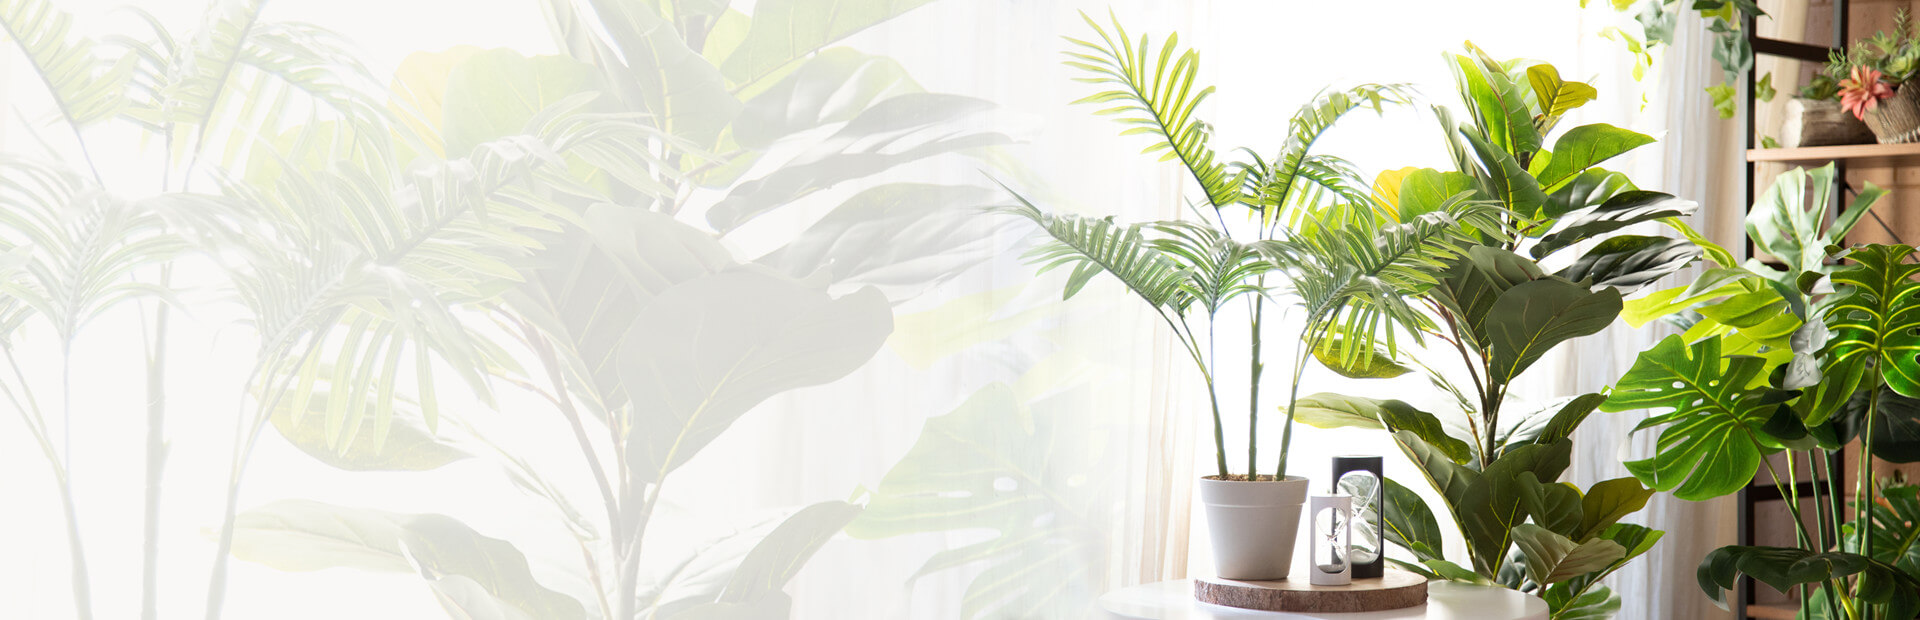 Artificial Trees Banner